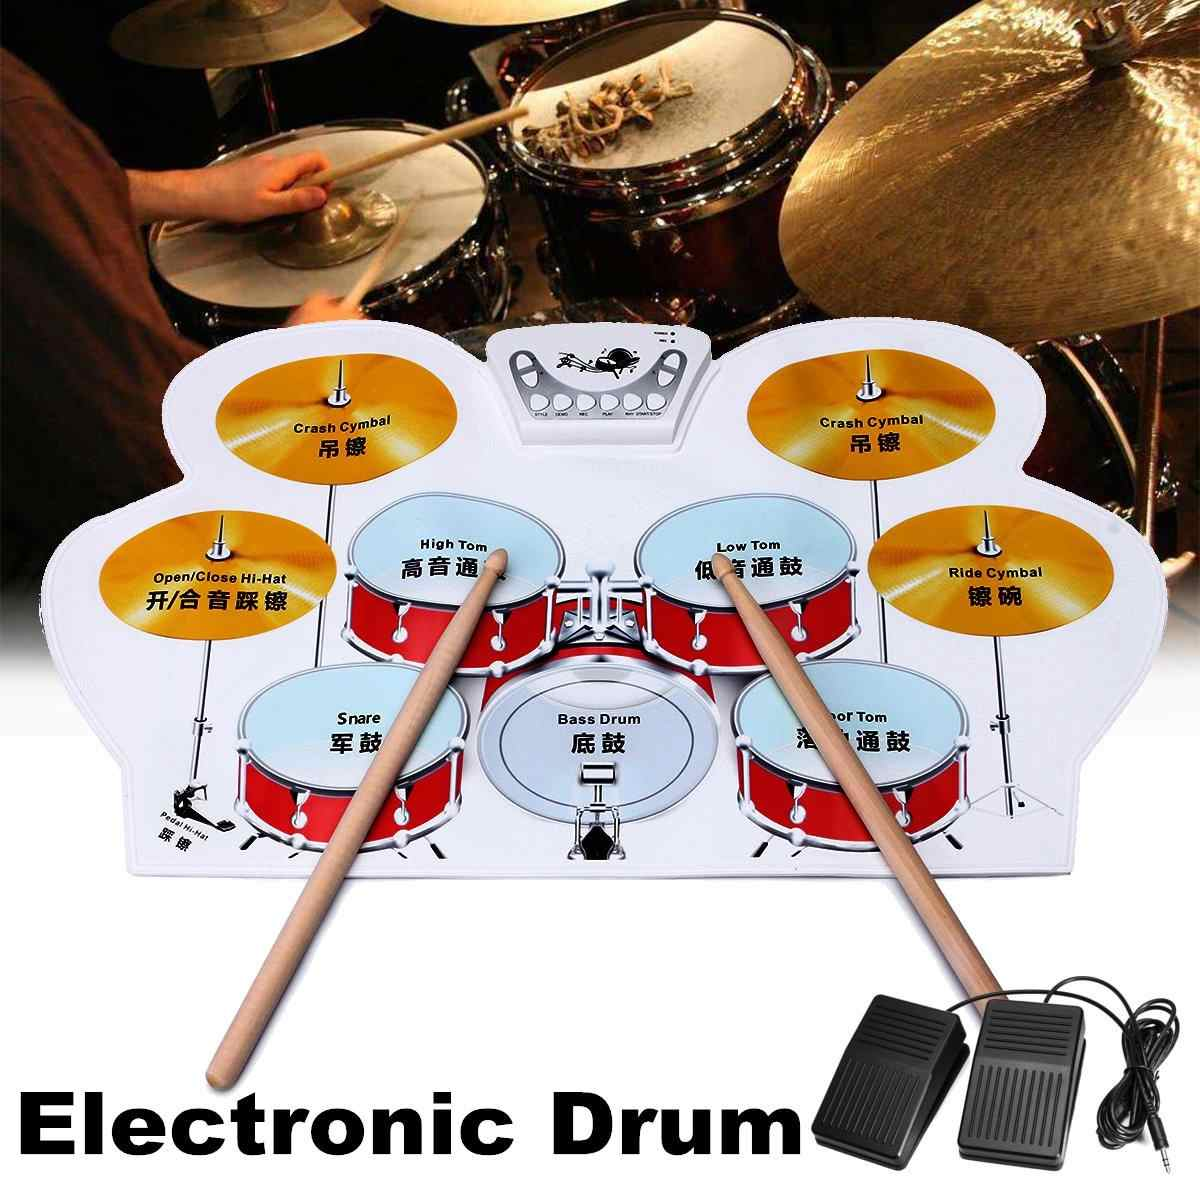 Portable Electronic Drum Digital USB 7 Pads Roll up Drum Set